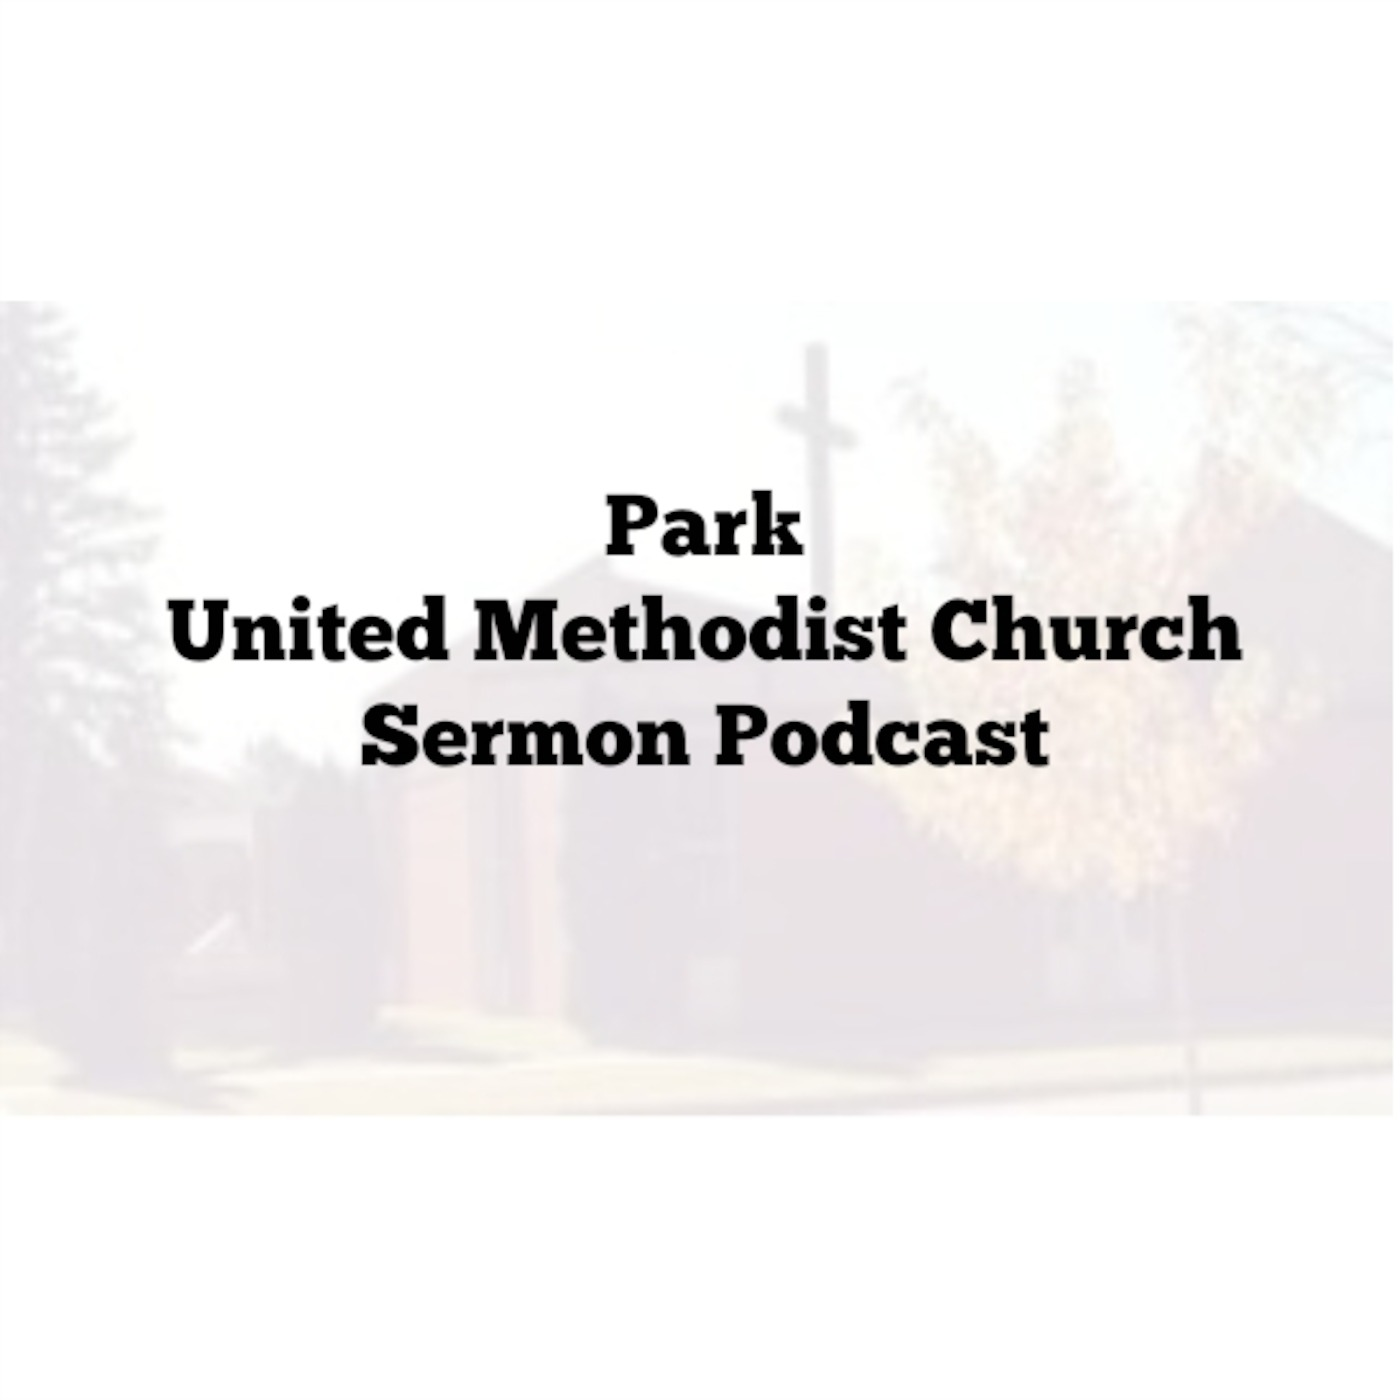 Park United Methodist Church